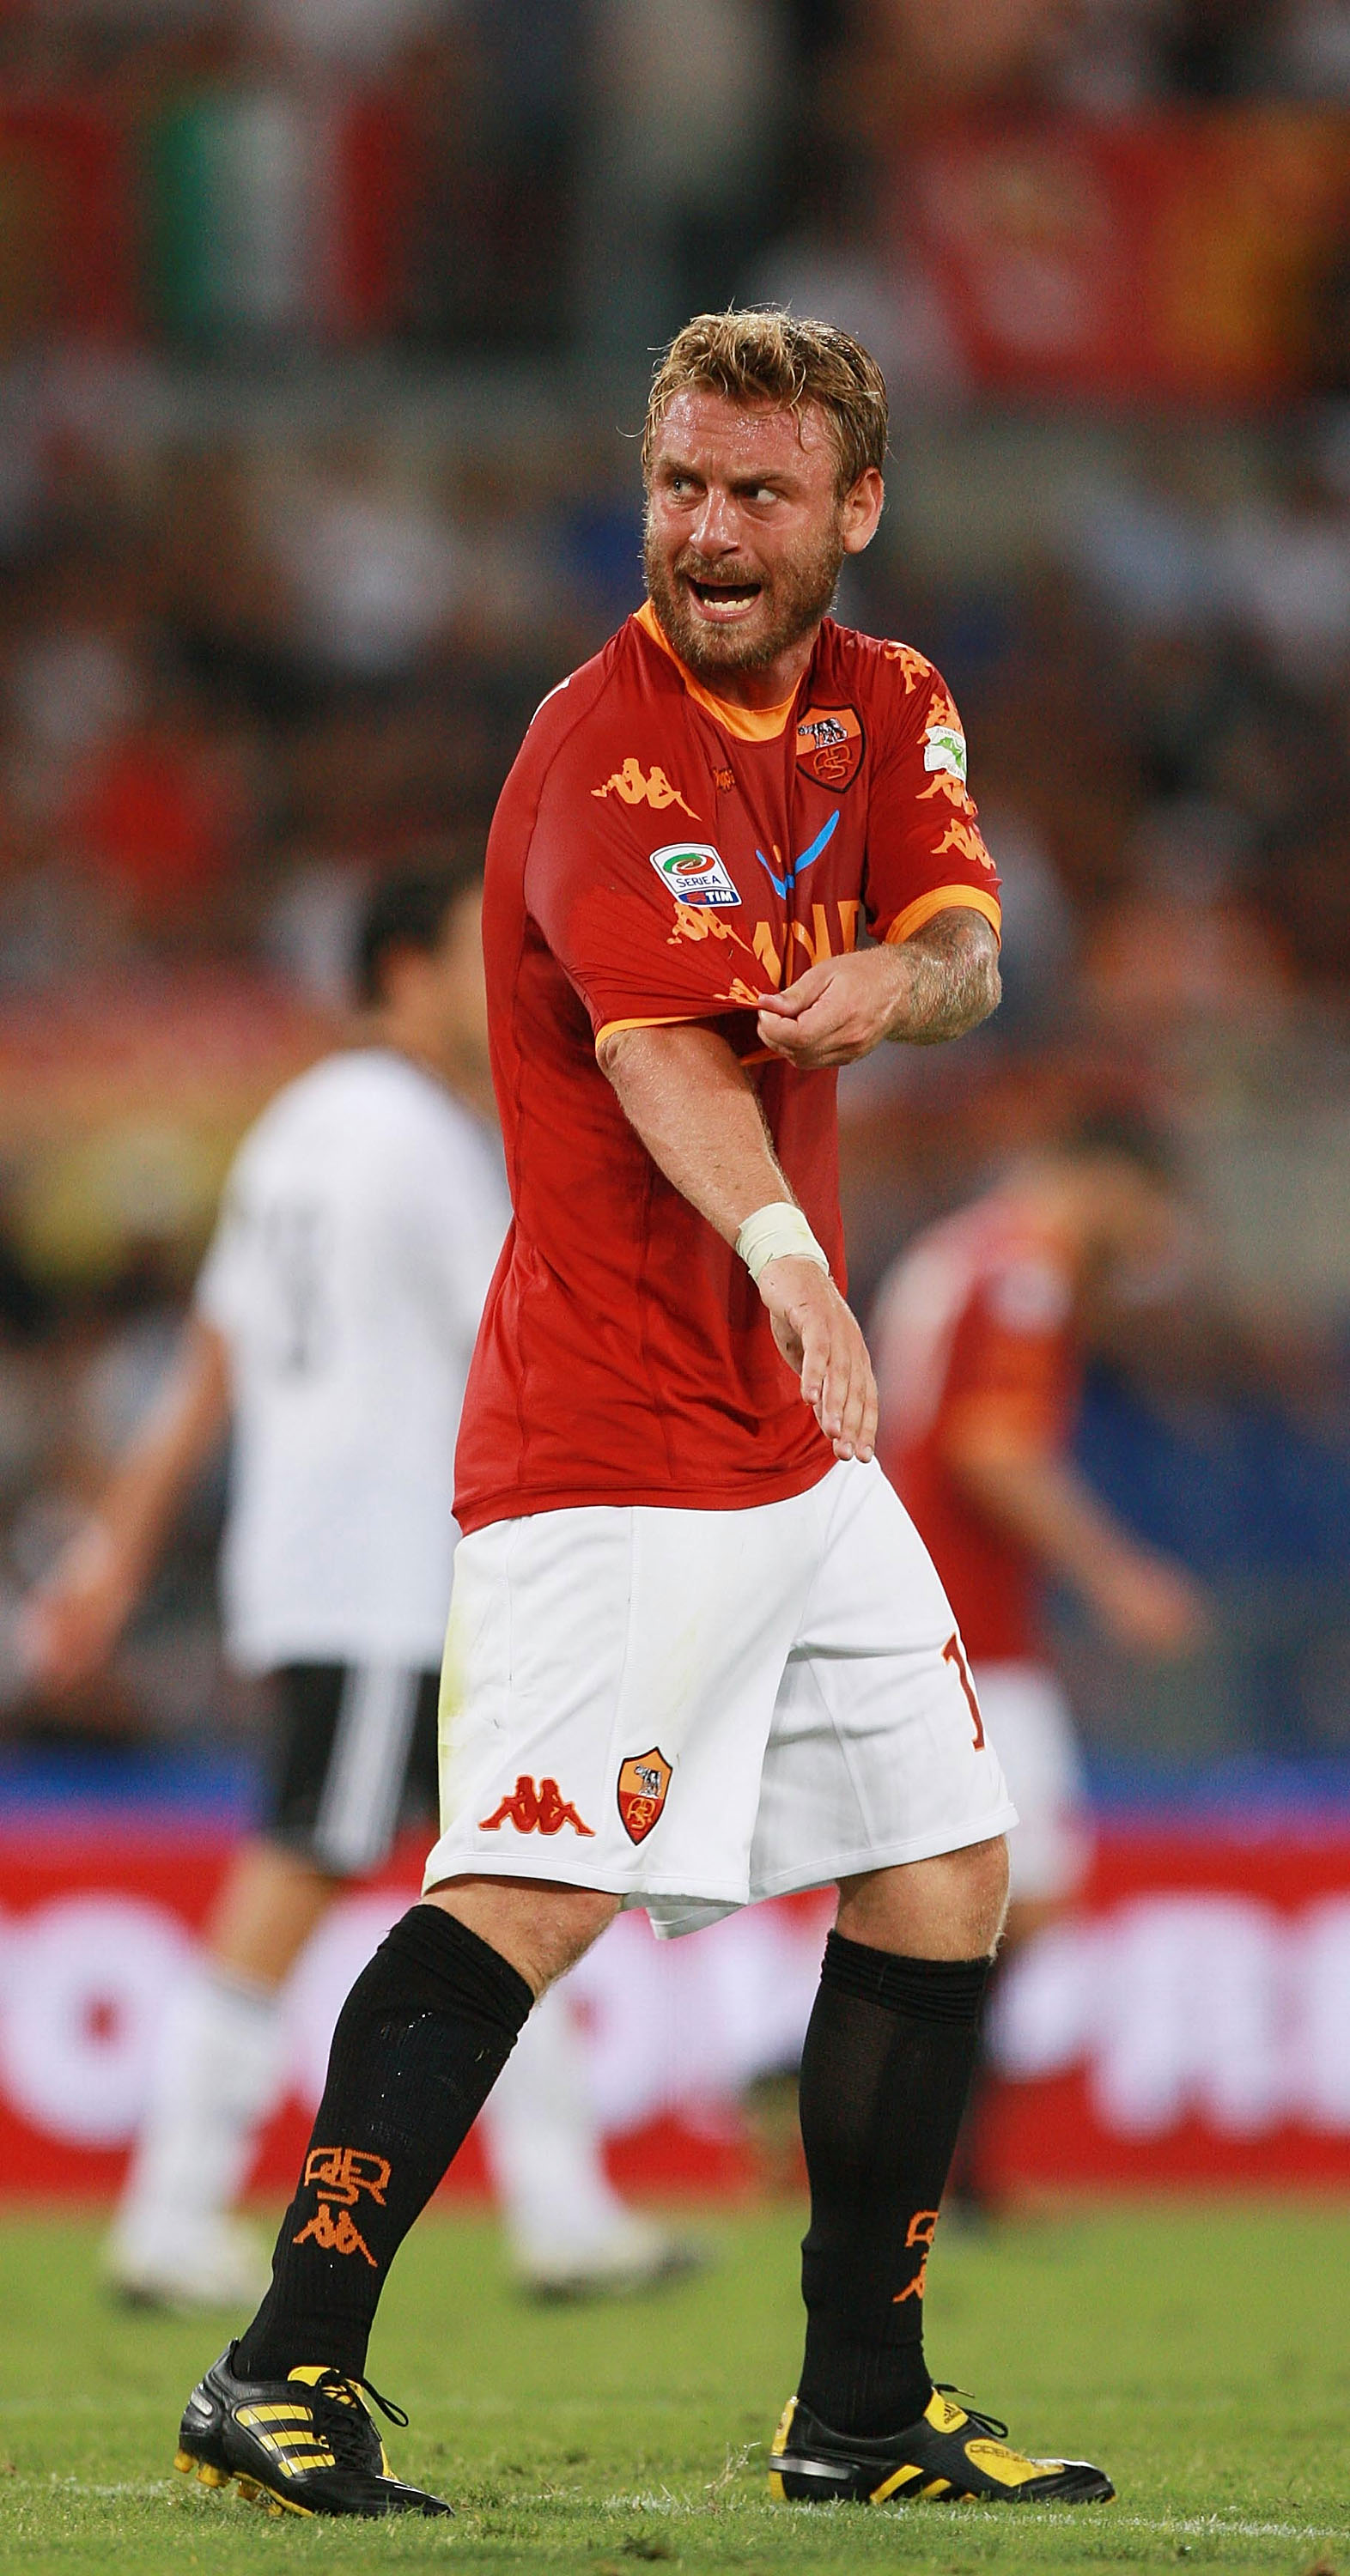 ROME - AUGUST 28:  Daniele De Rossi of AS Roma protest during the Serie A match between AS Roma and AC Cesena at Stadio Olimpico on August 28, 2010 in Rome, Italy.  (Photo by Paolo Bruno/Getty Images)